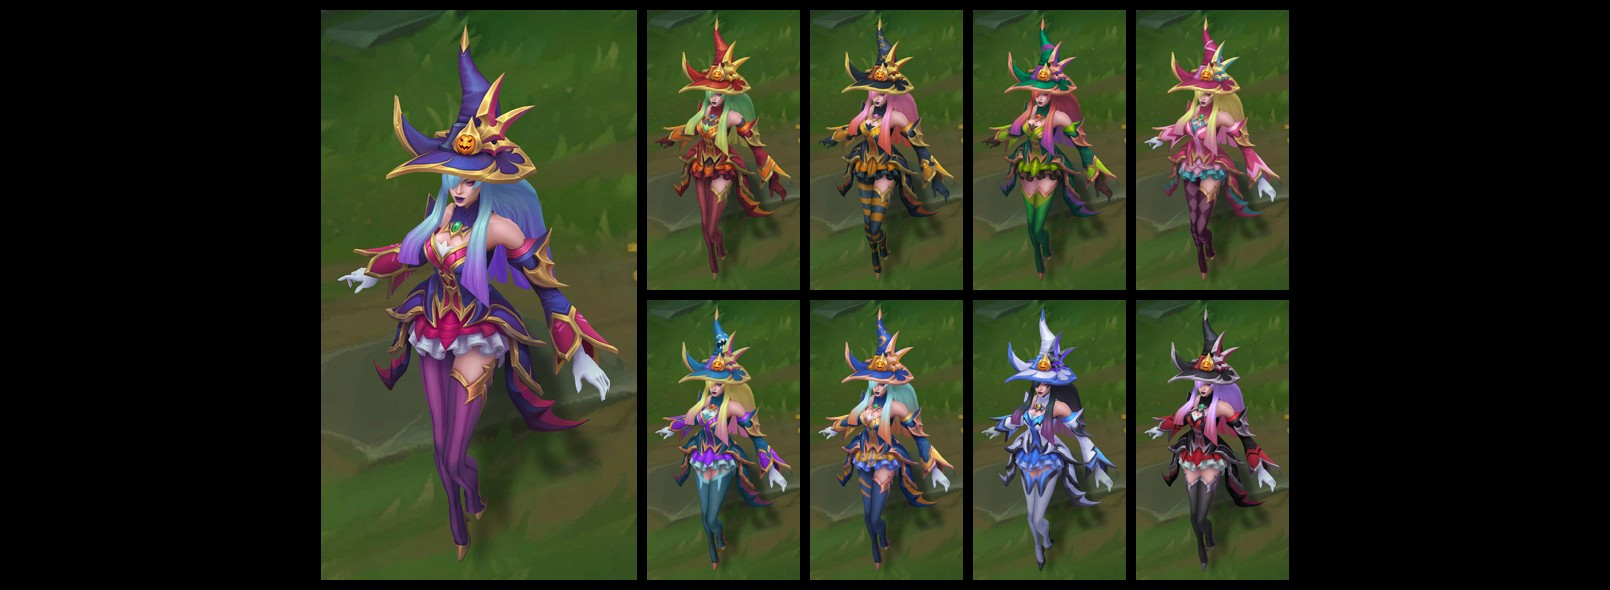 Syndra_Syndra_Bewitching_Chromas_Fixed_Width.jpg